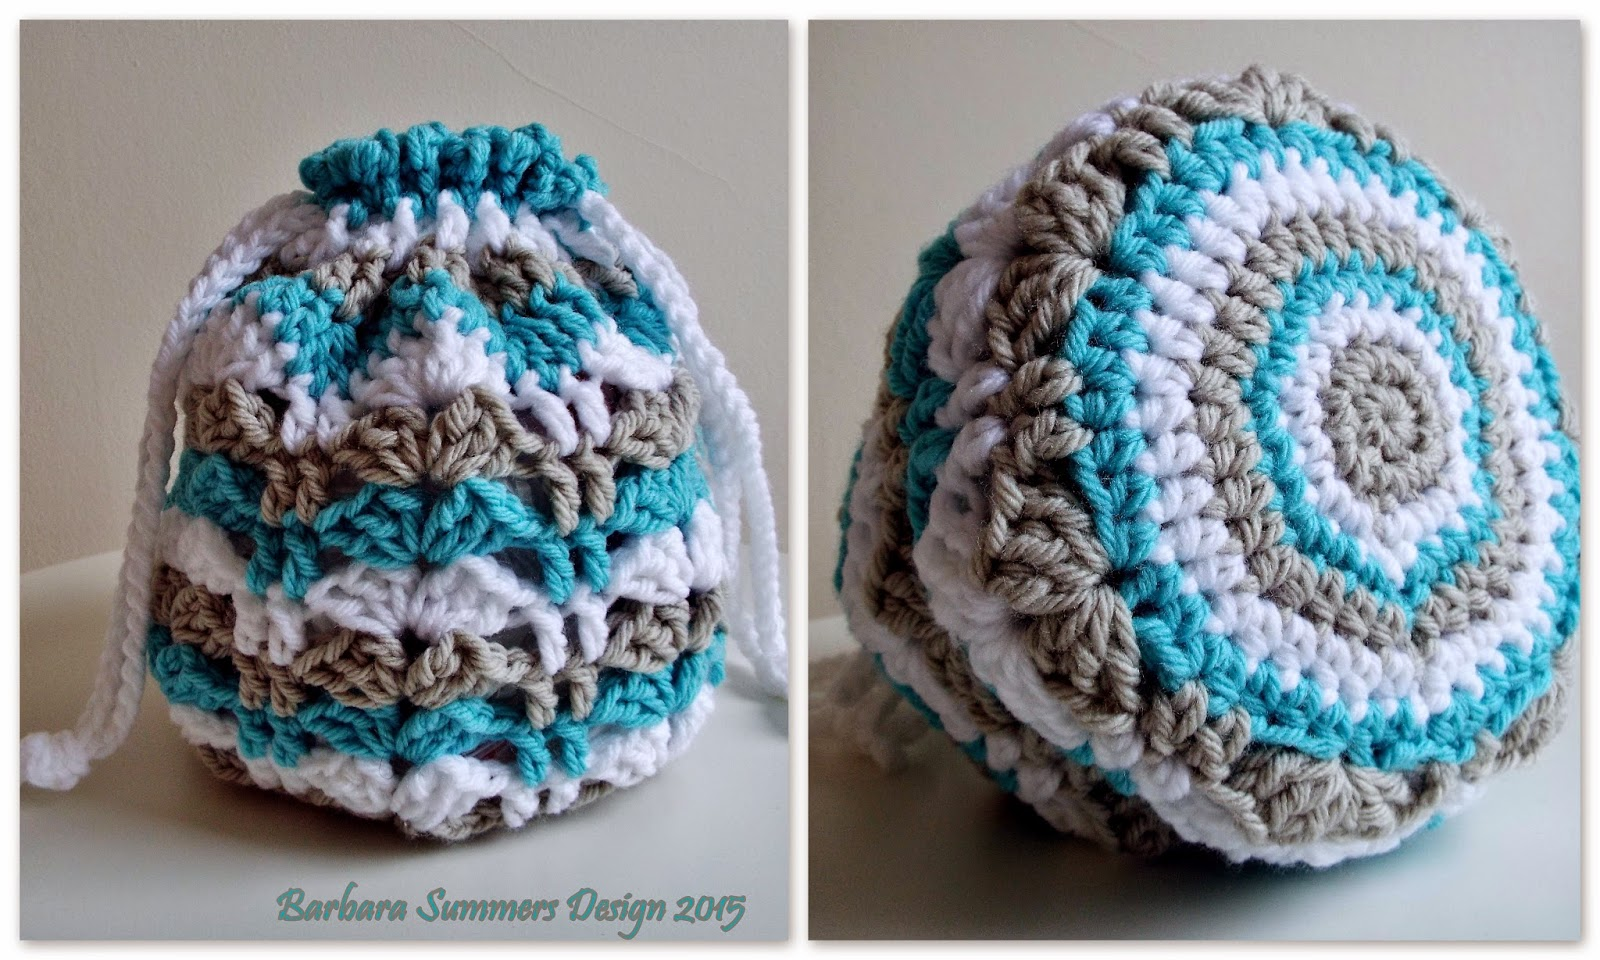 How To Crochet A Bag : crochet bag, circular bag, fans, posts, how to crochet fans, how to ...